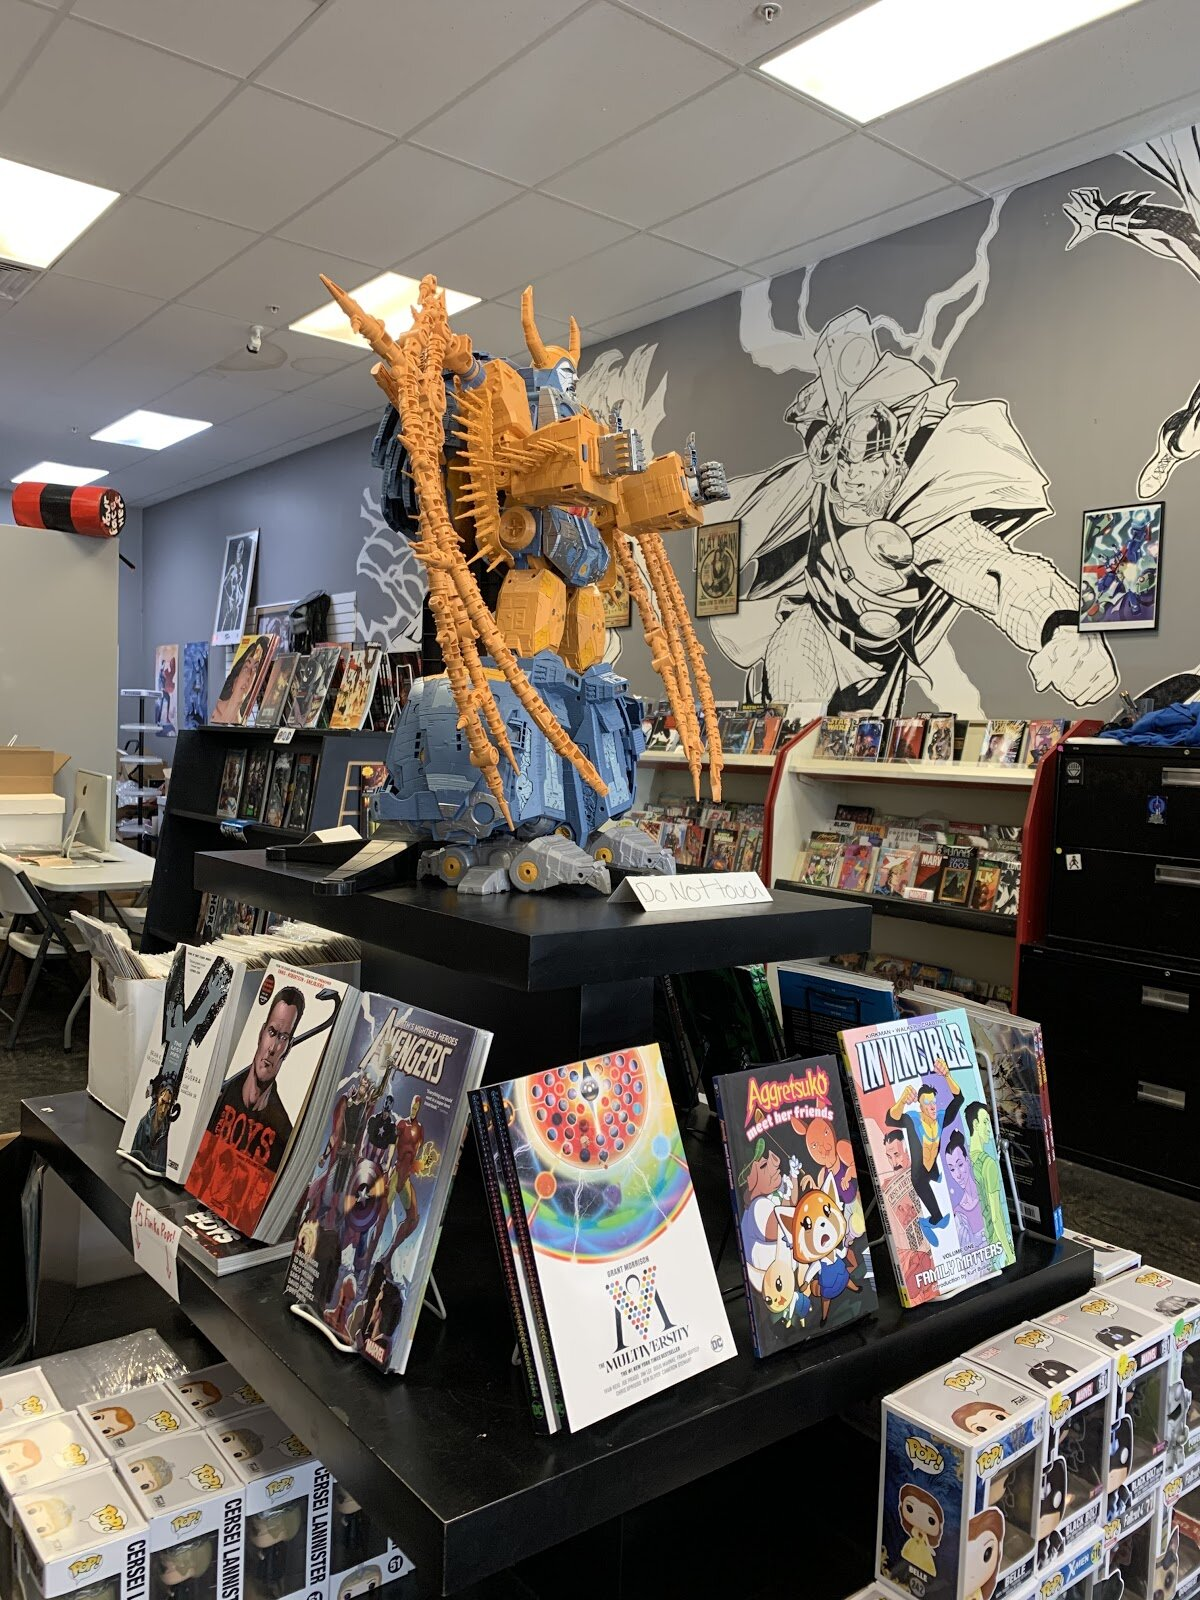 Large robotic figure stands over display of graphic novels